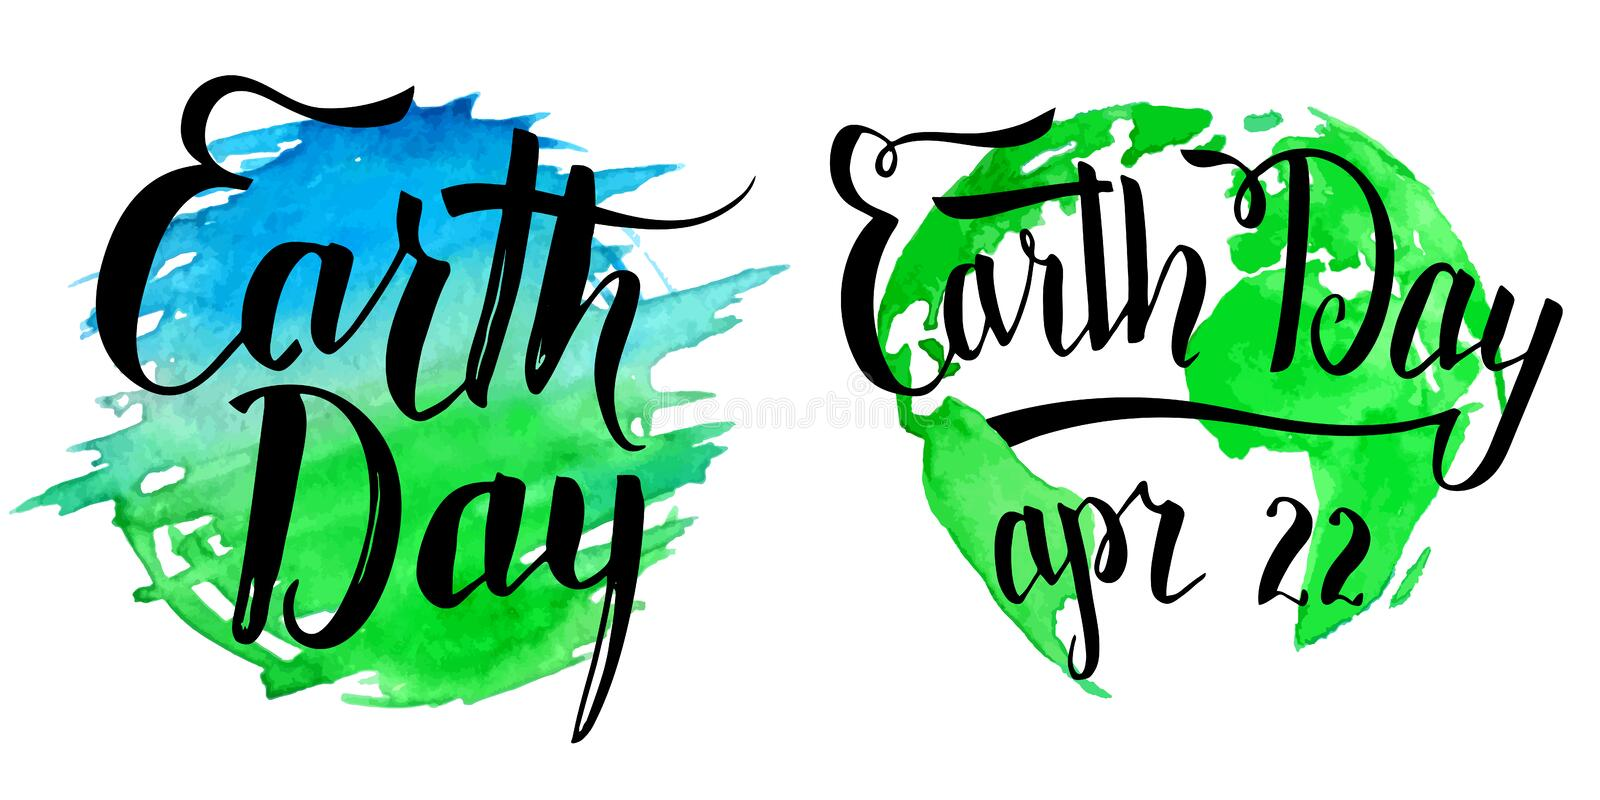 Earth Day calligraphy on watercolor background. Earth Day modern calligraphy set. Brush handwritten inscriptions on blue and green watercolor splash and planet stock illustration